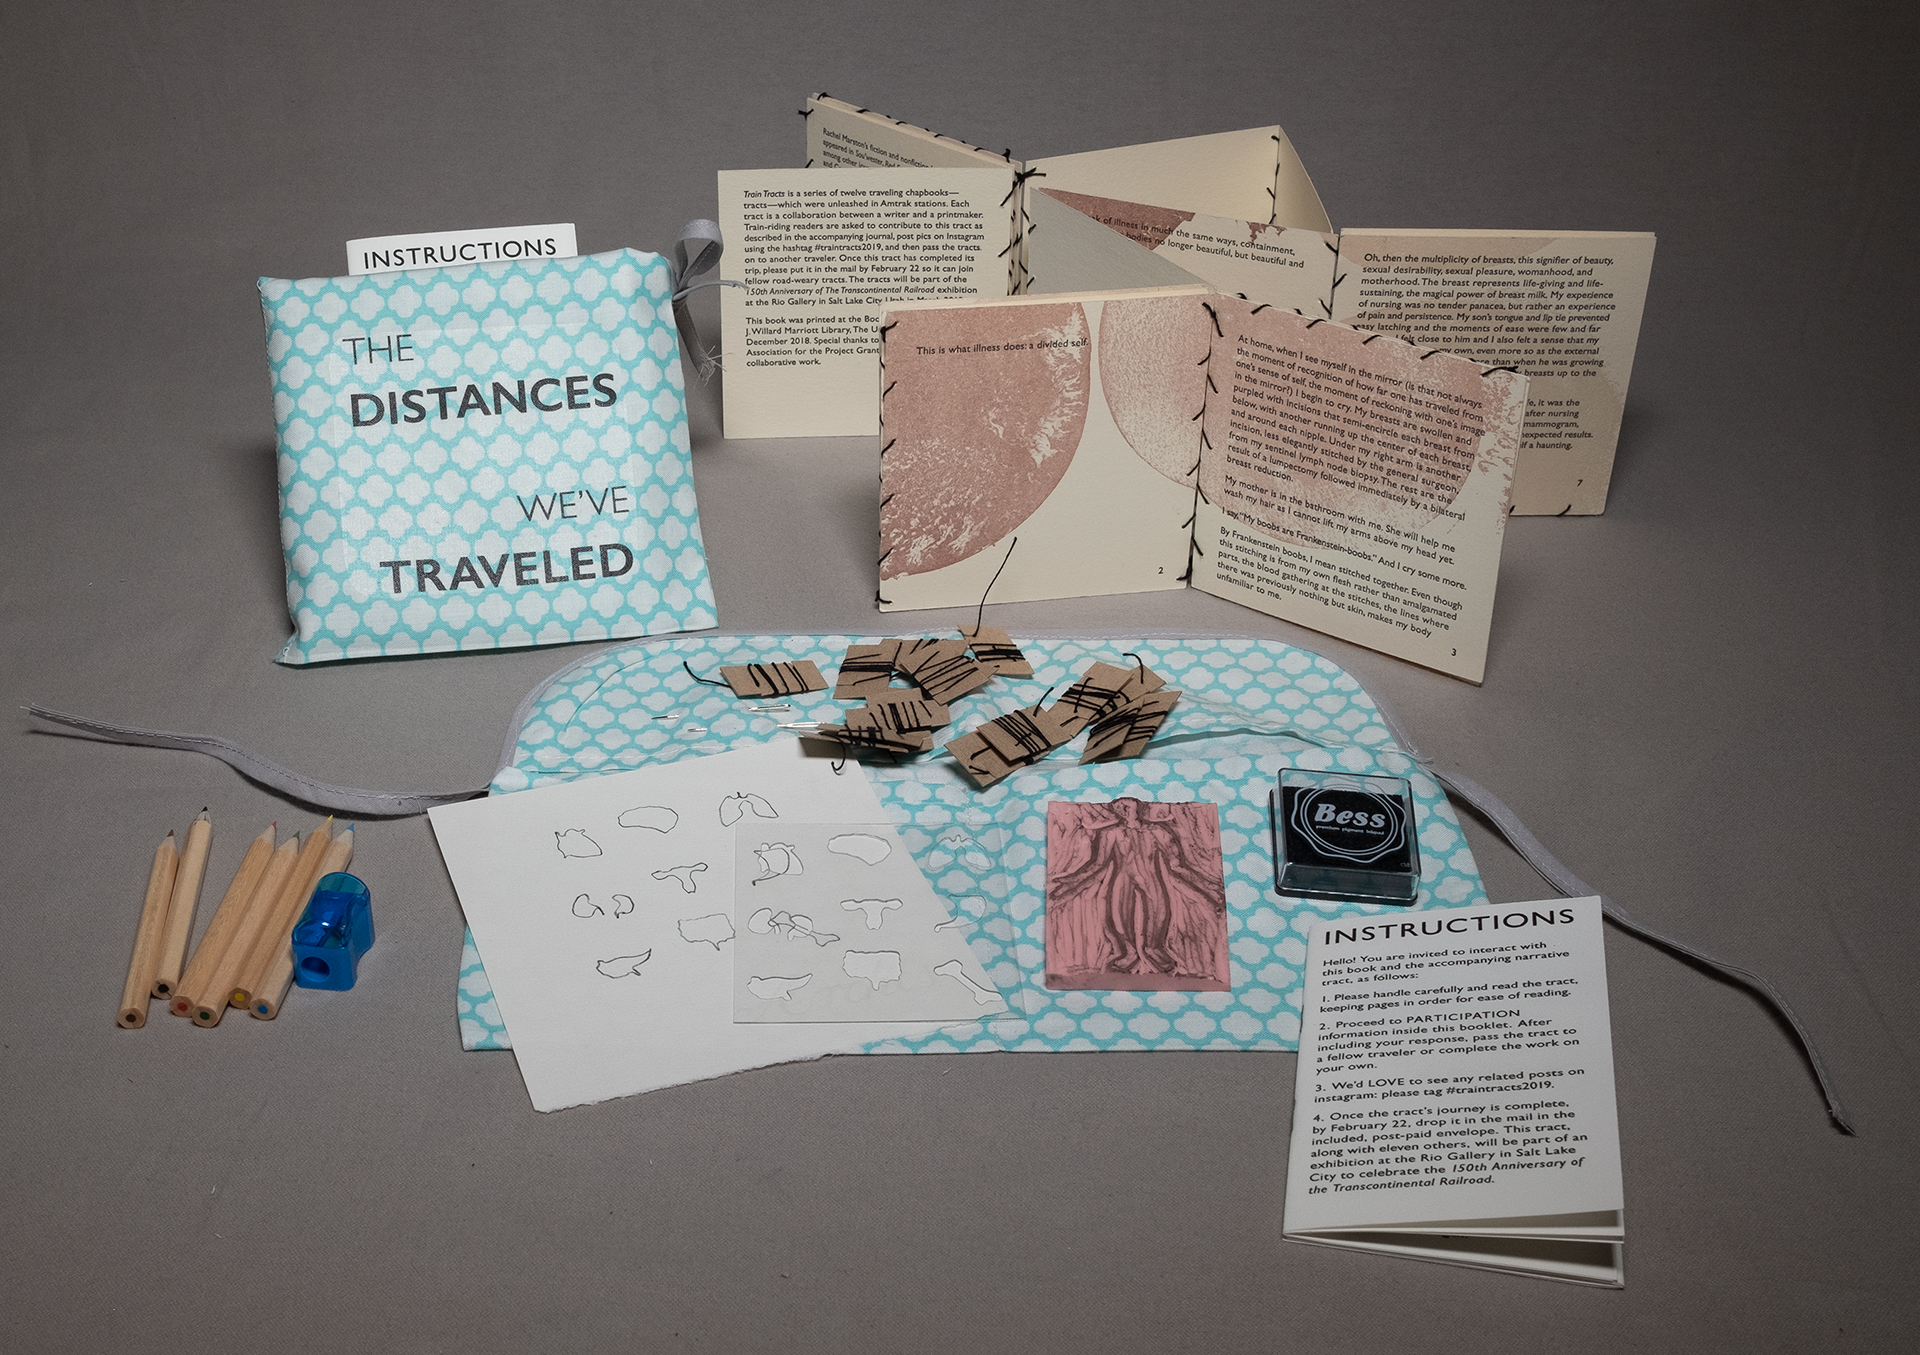 """A photo of the book """"The Distances We've Traveled"""" by Marnie Powers-Torrey"""